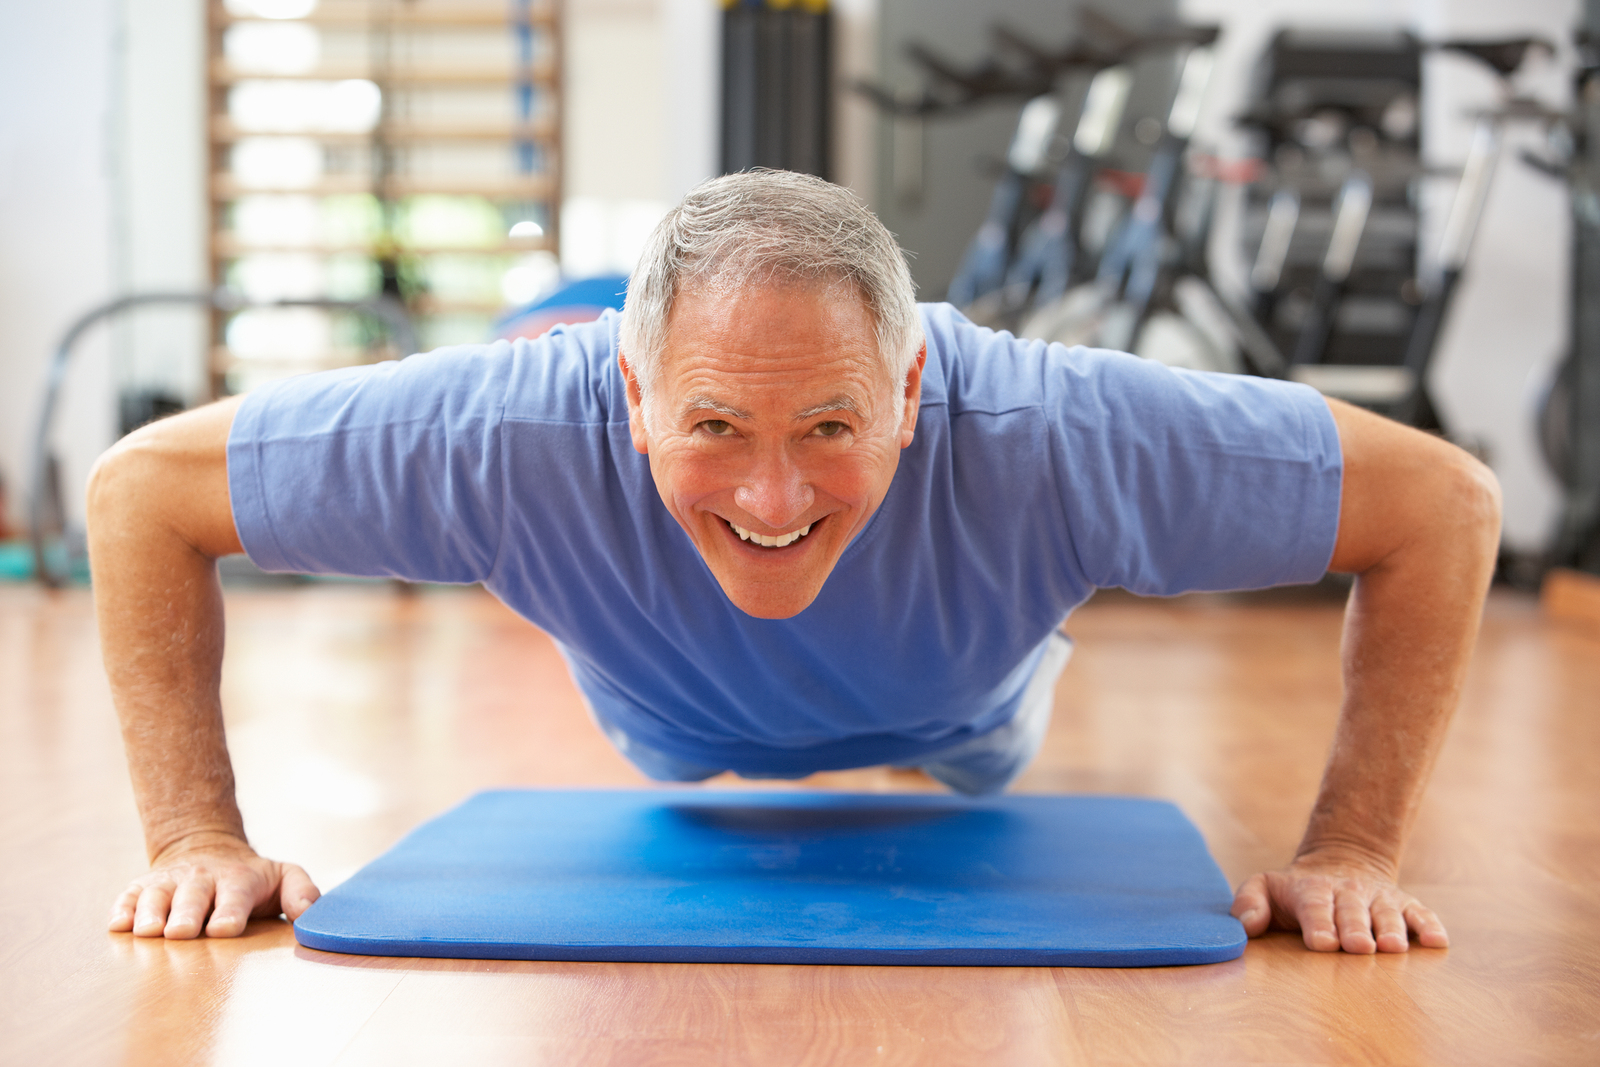 Physiotherapy following prostate cancer